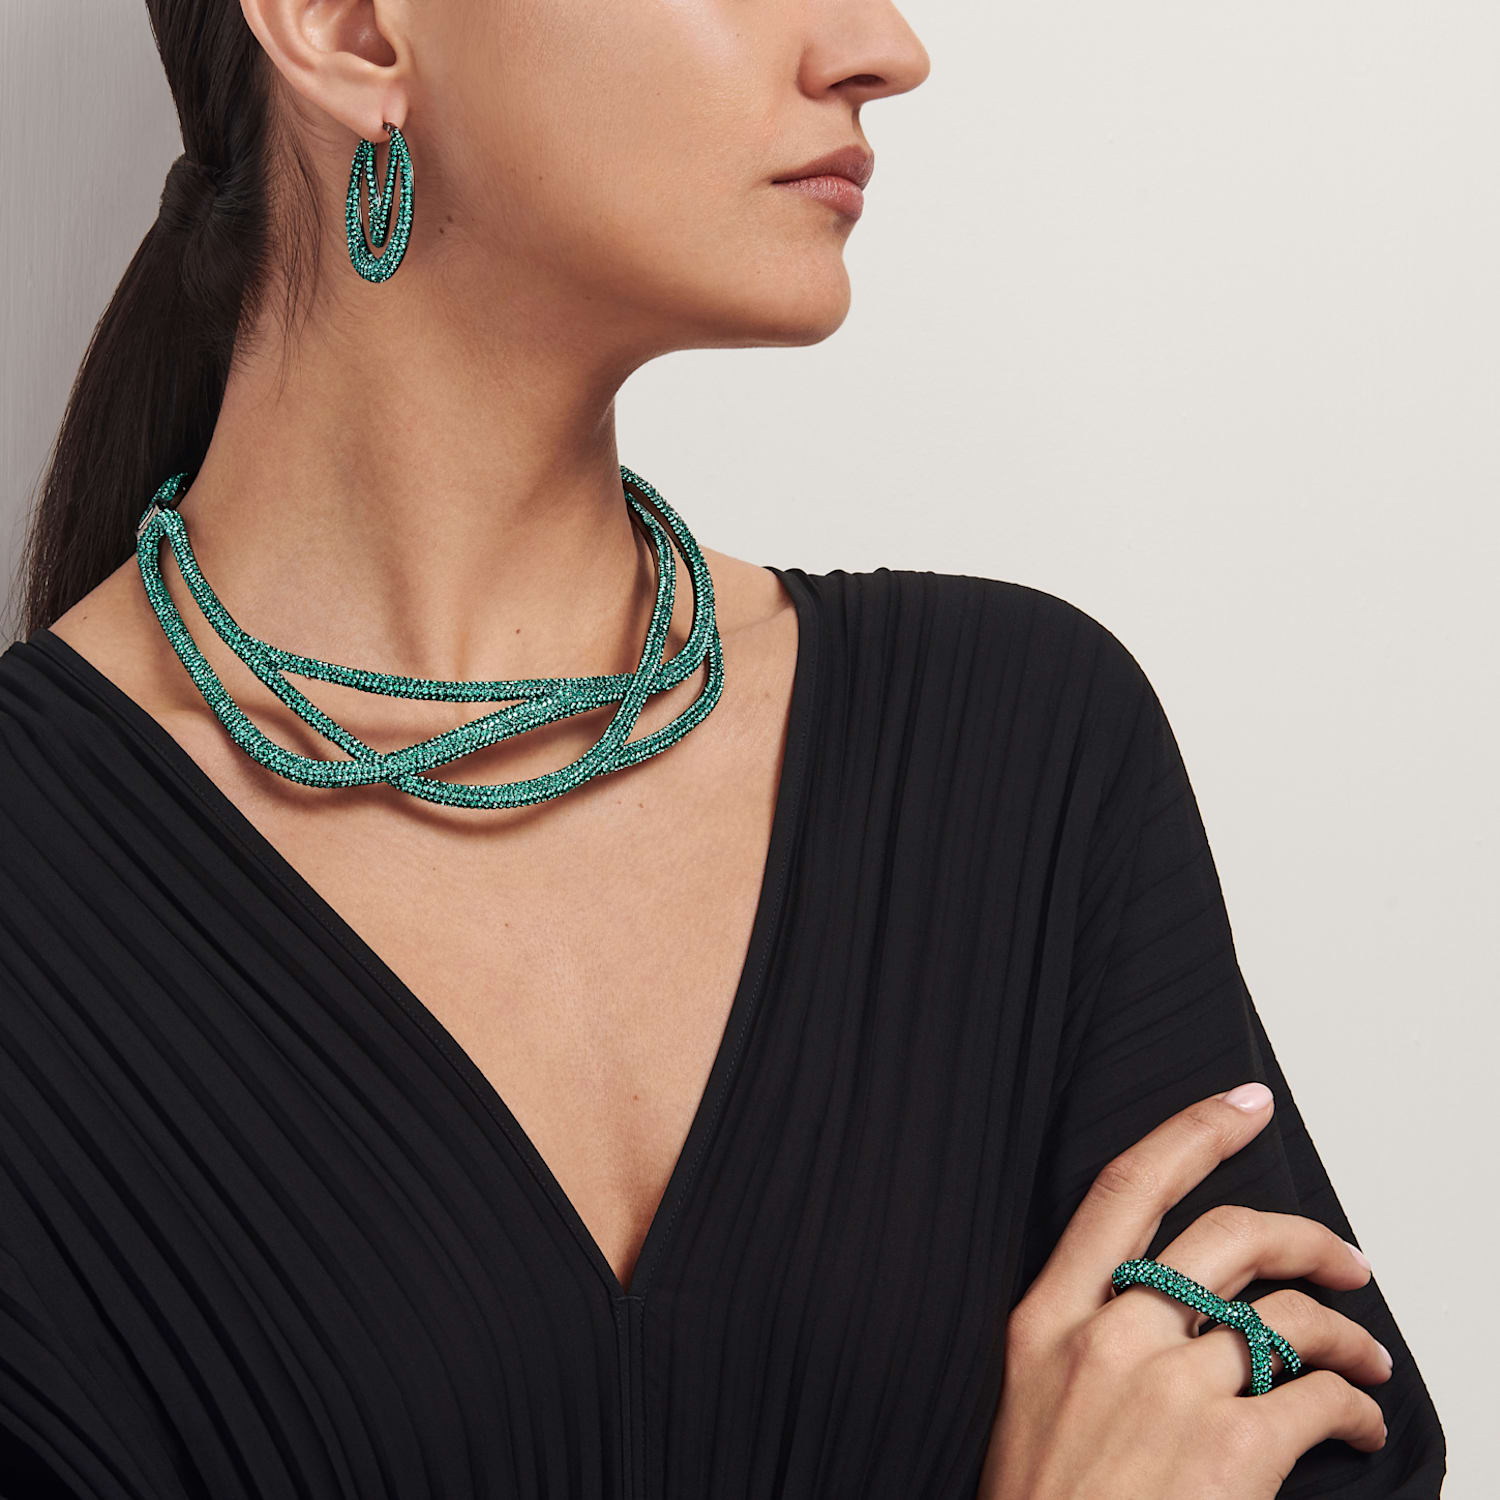 Tigris Double Ring, Green, Ruthenium plated